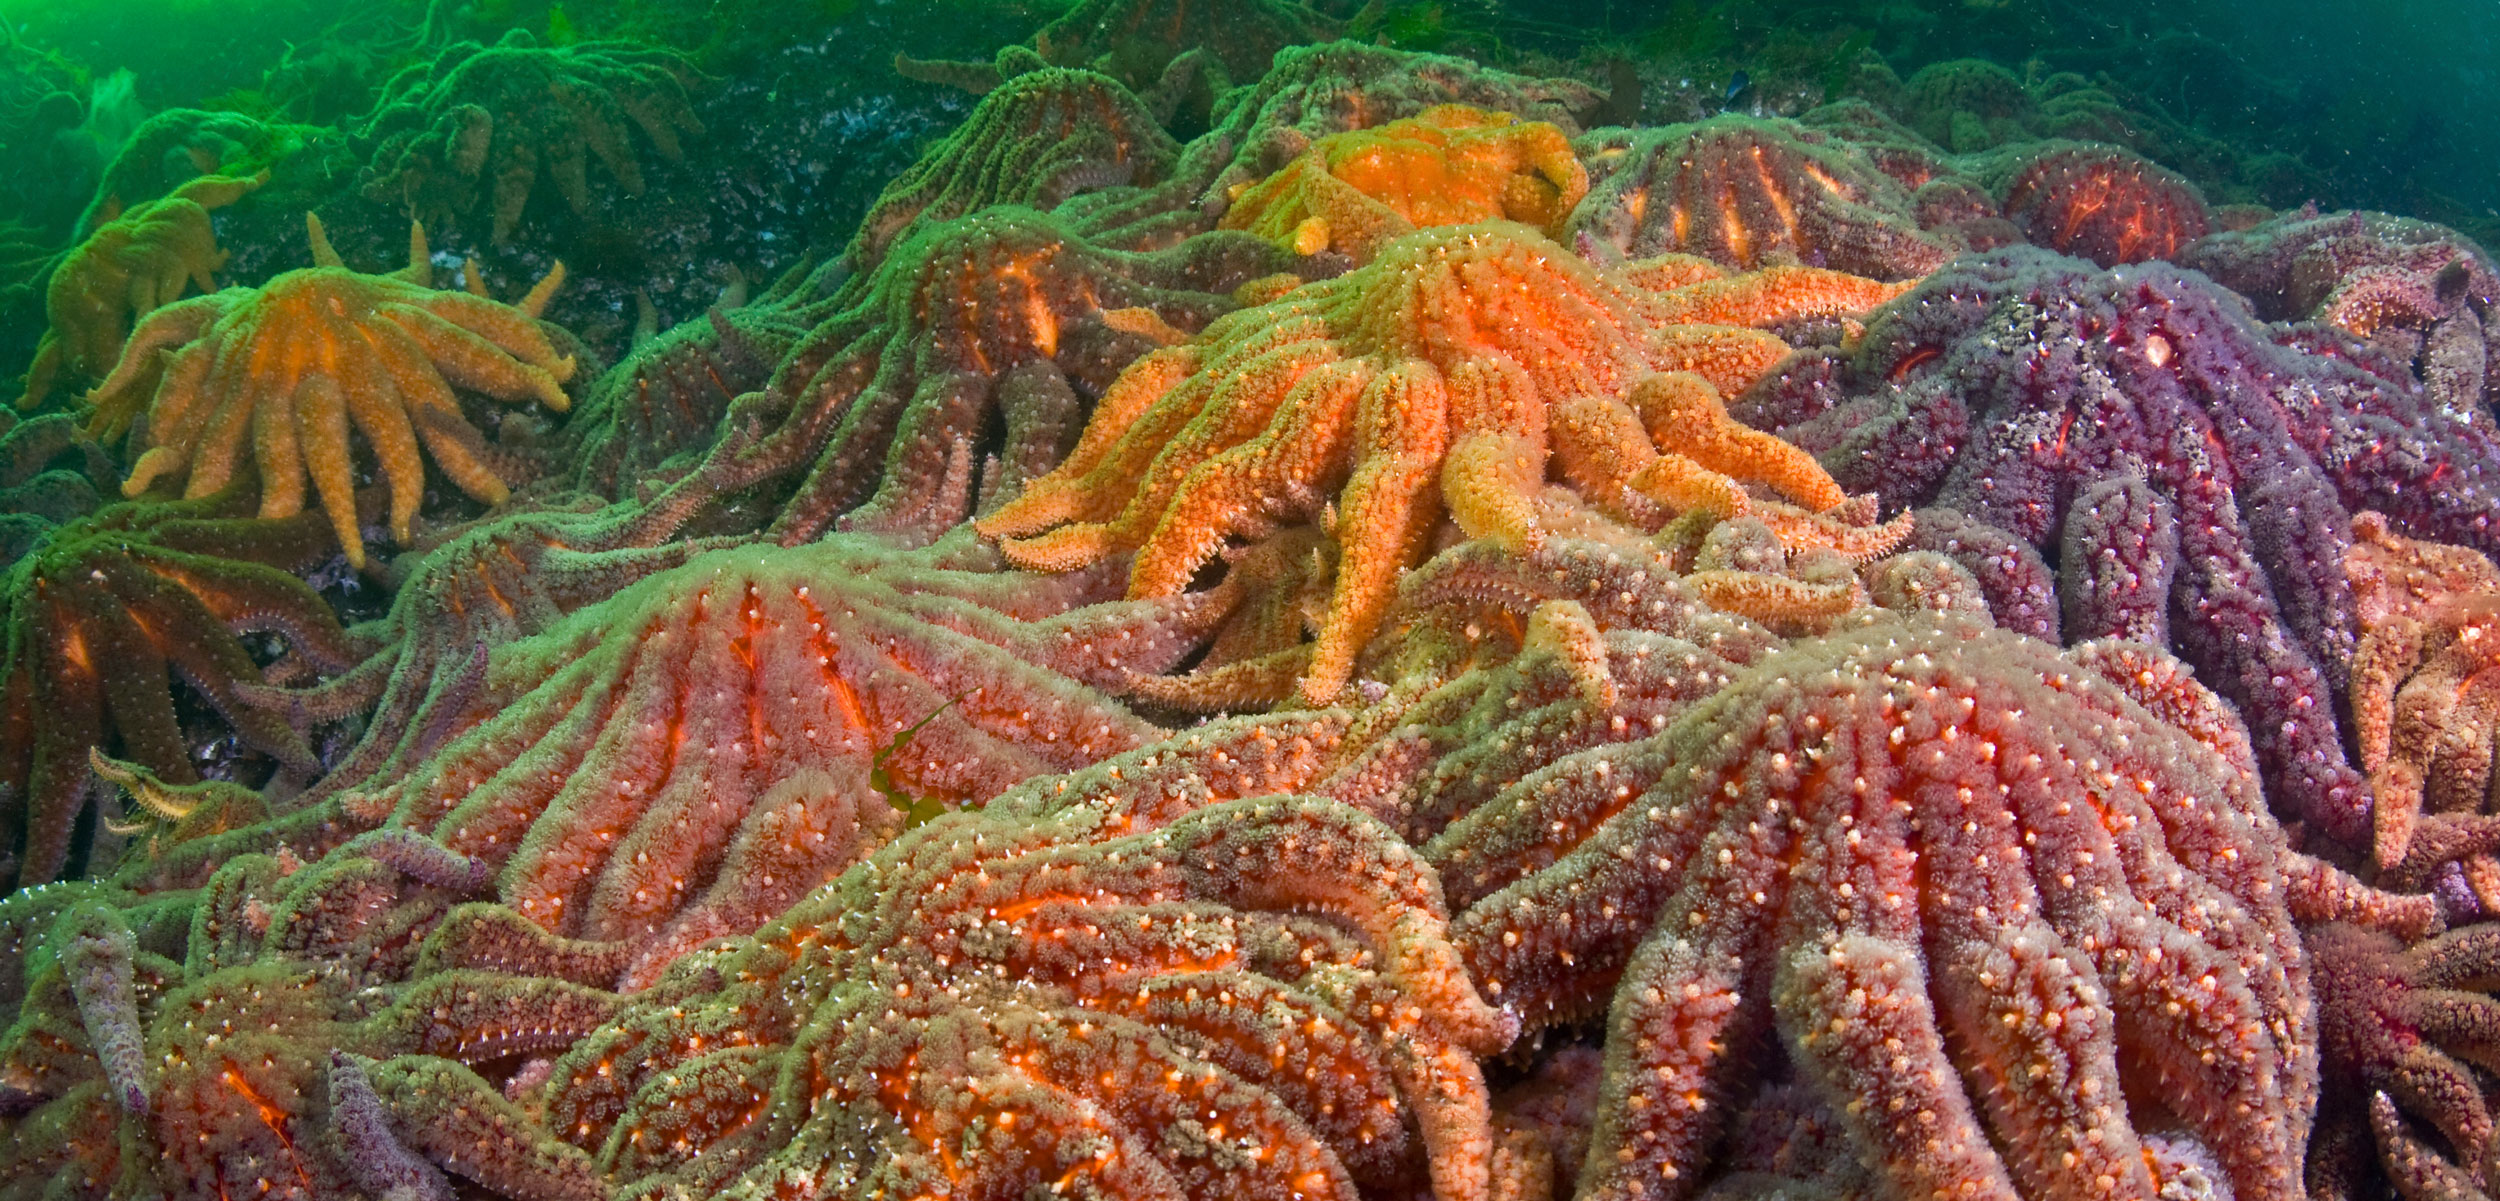 Large group of Sunflower sea stars (Asterias, Pycnopodia helianthoides)